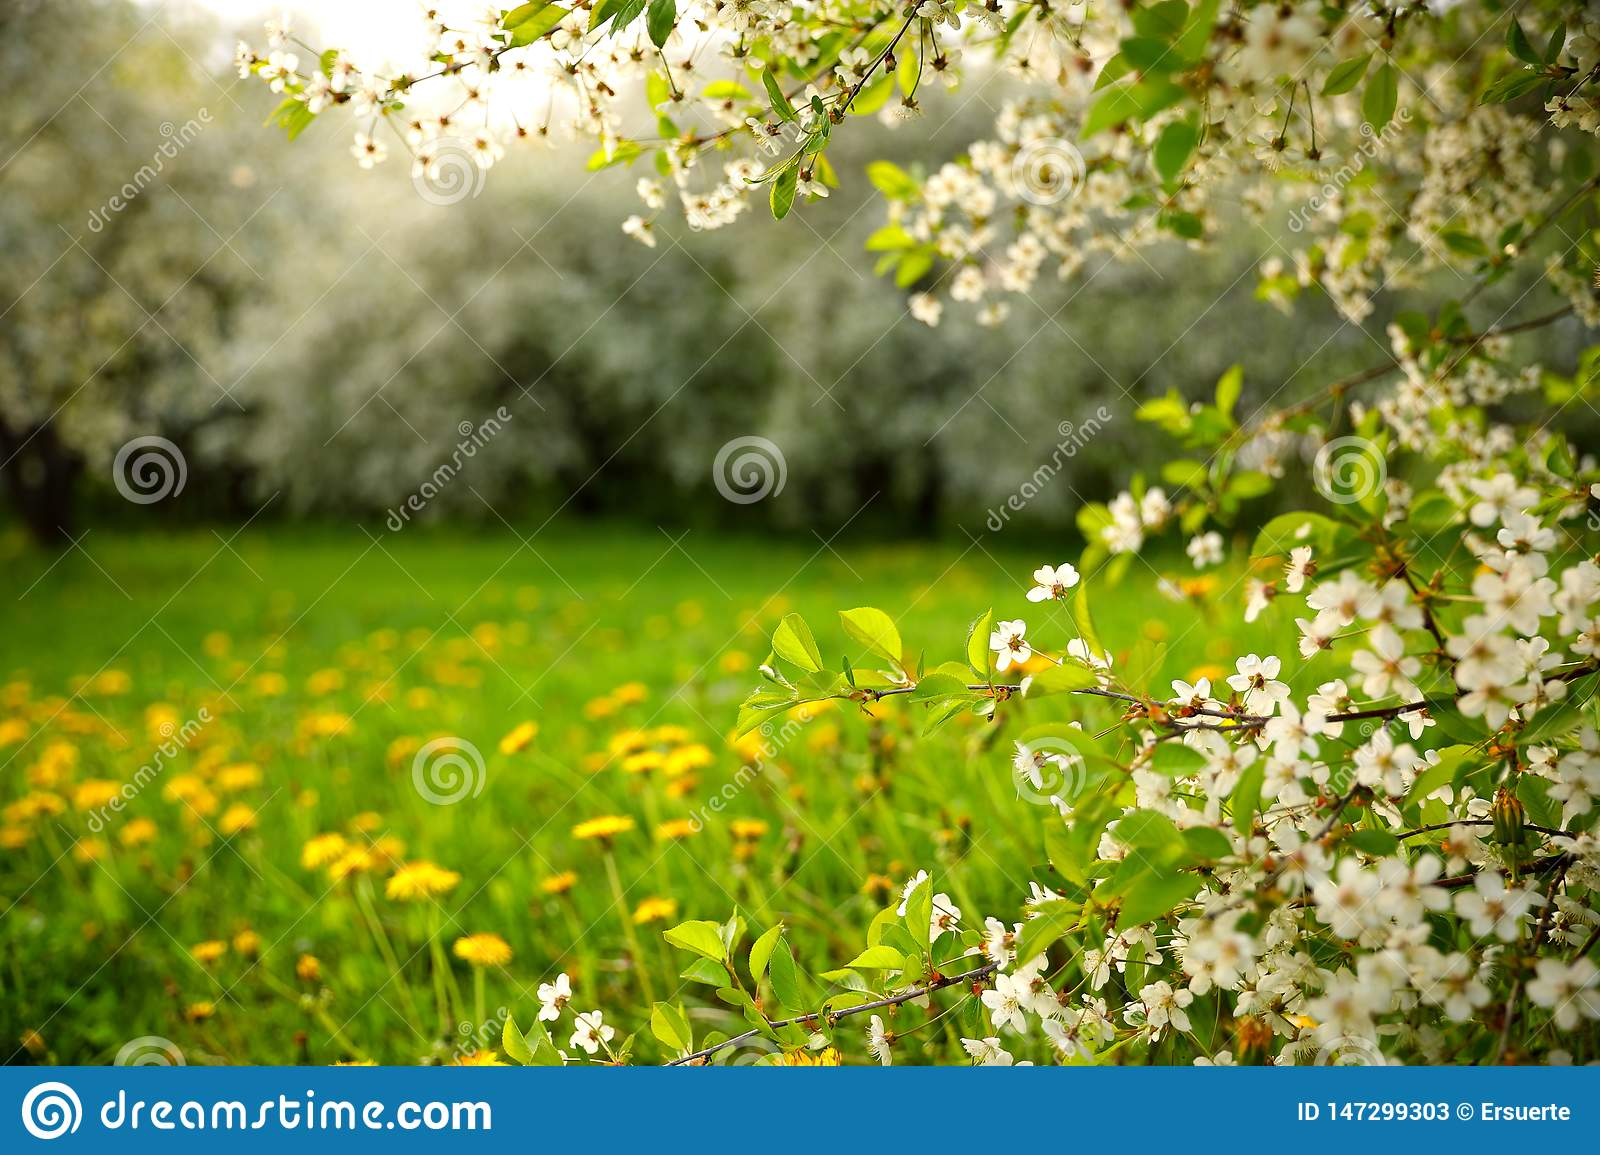 A blossoming cherry orchard and dandelions in the grass on a spring day